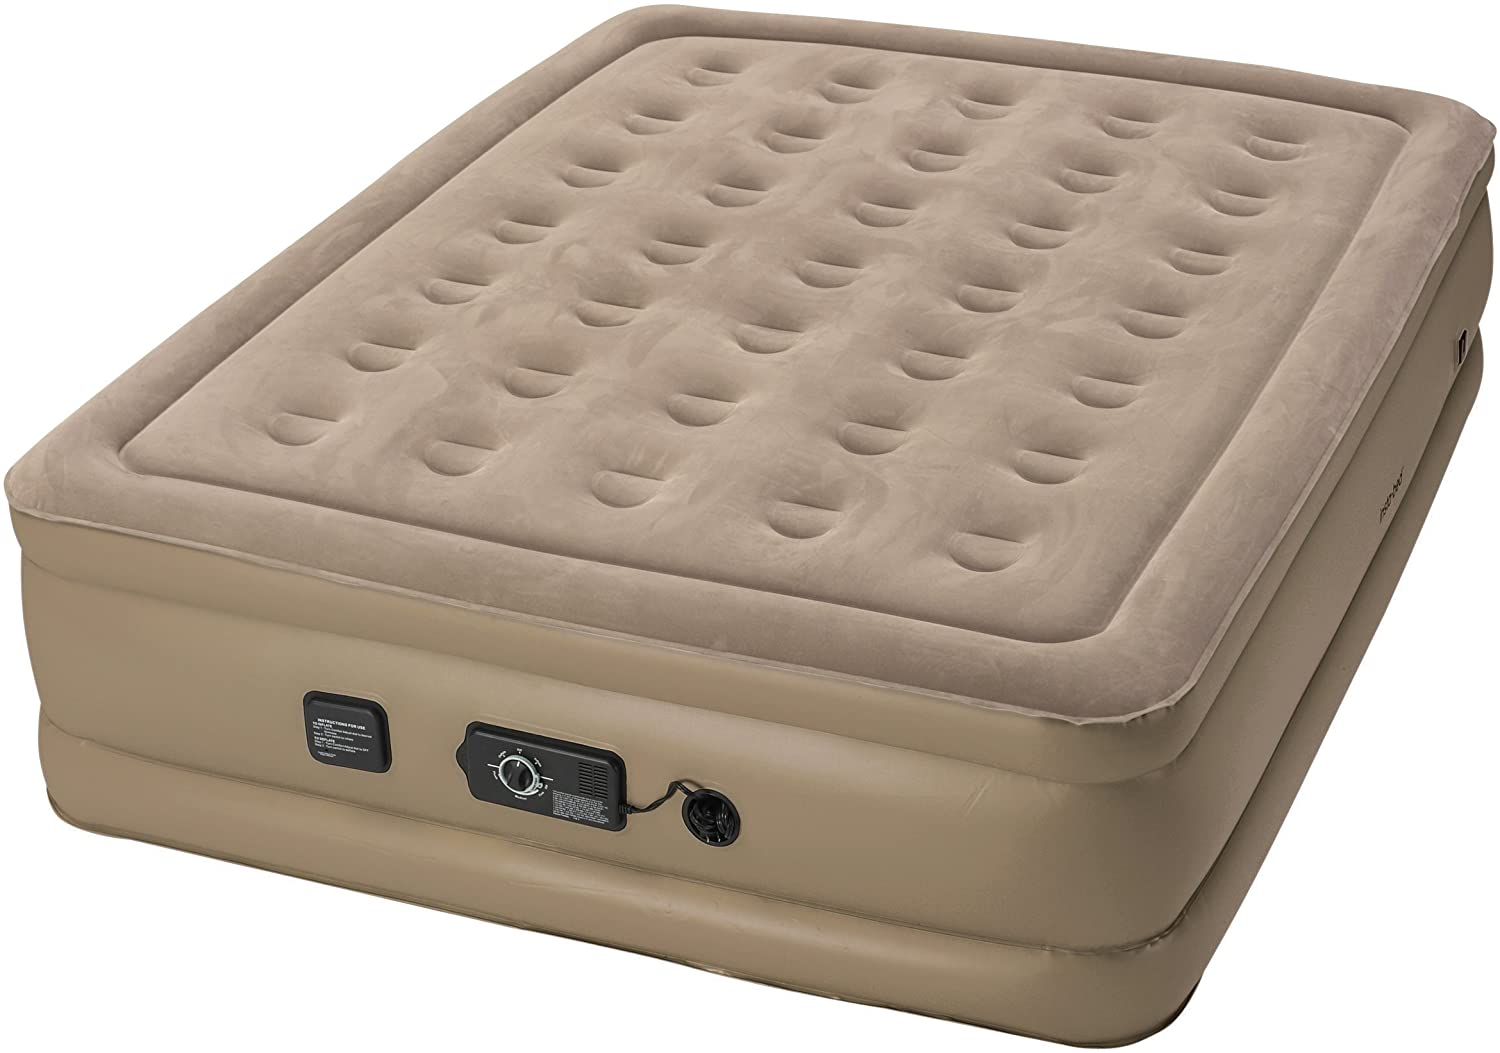 Insta-Bed Raised Air Bed